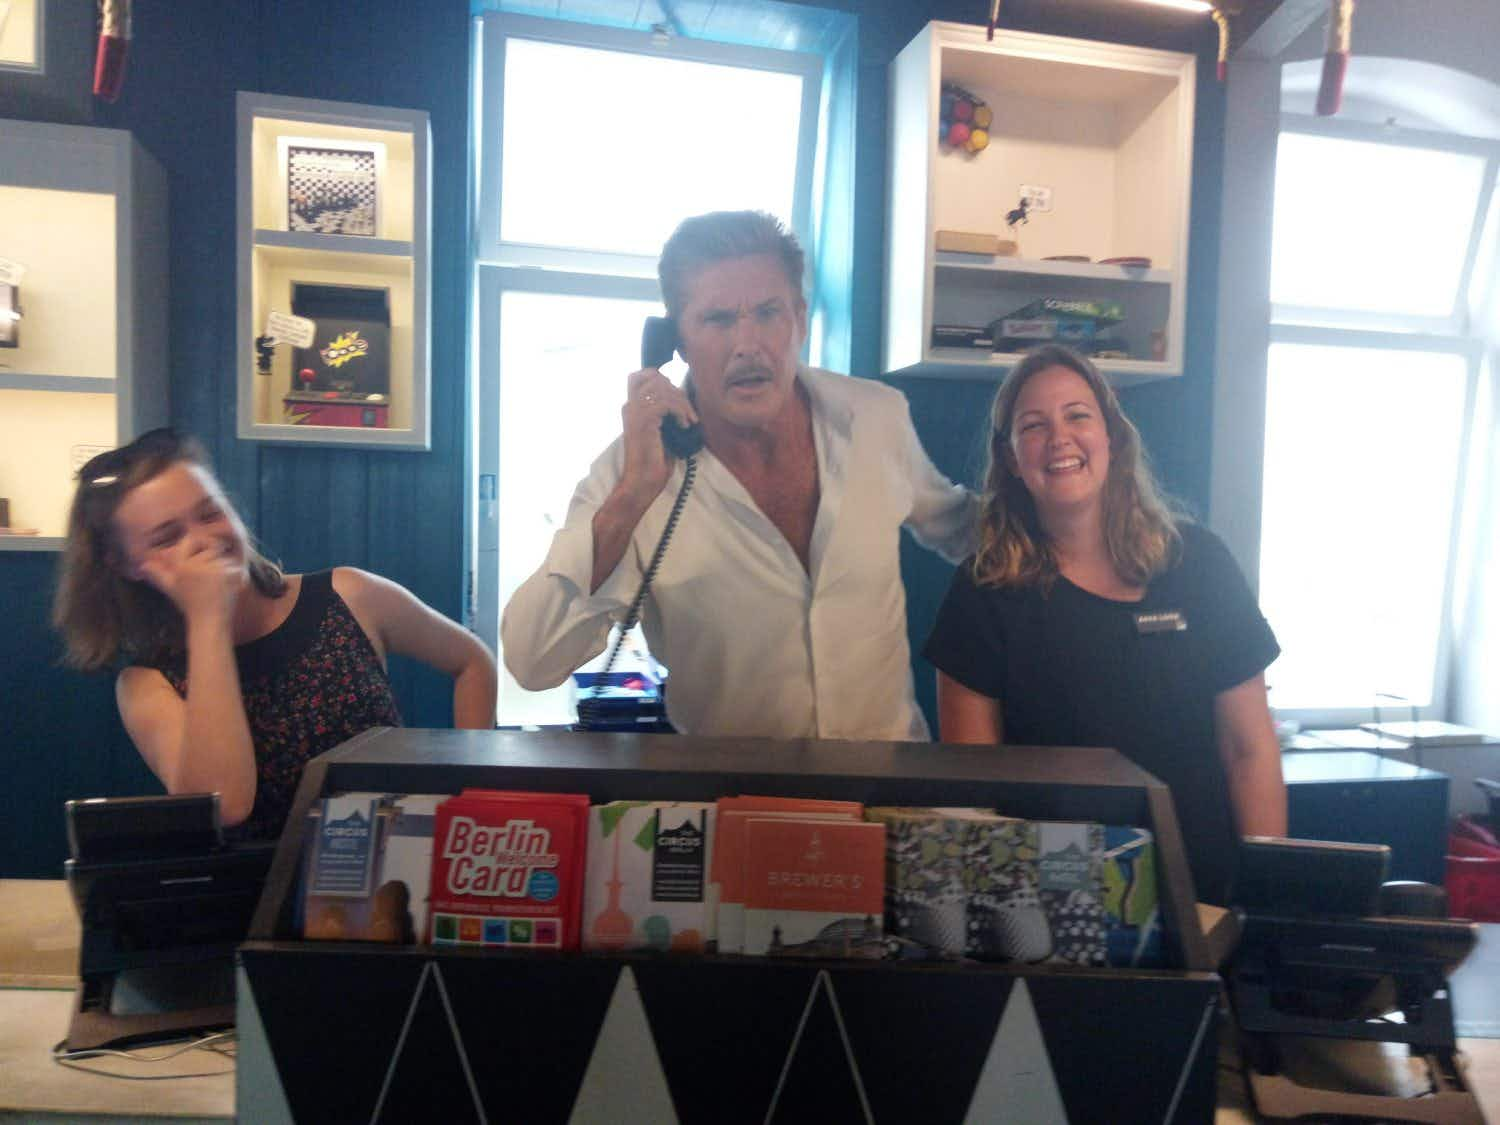 David Hasselhoff paid a visit to the Berlin hostel that has a shrine to him